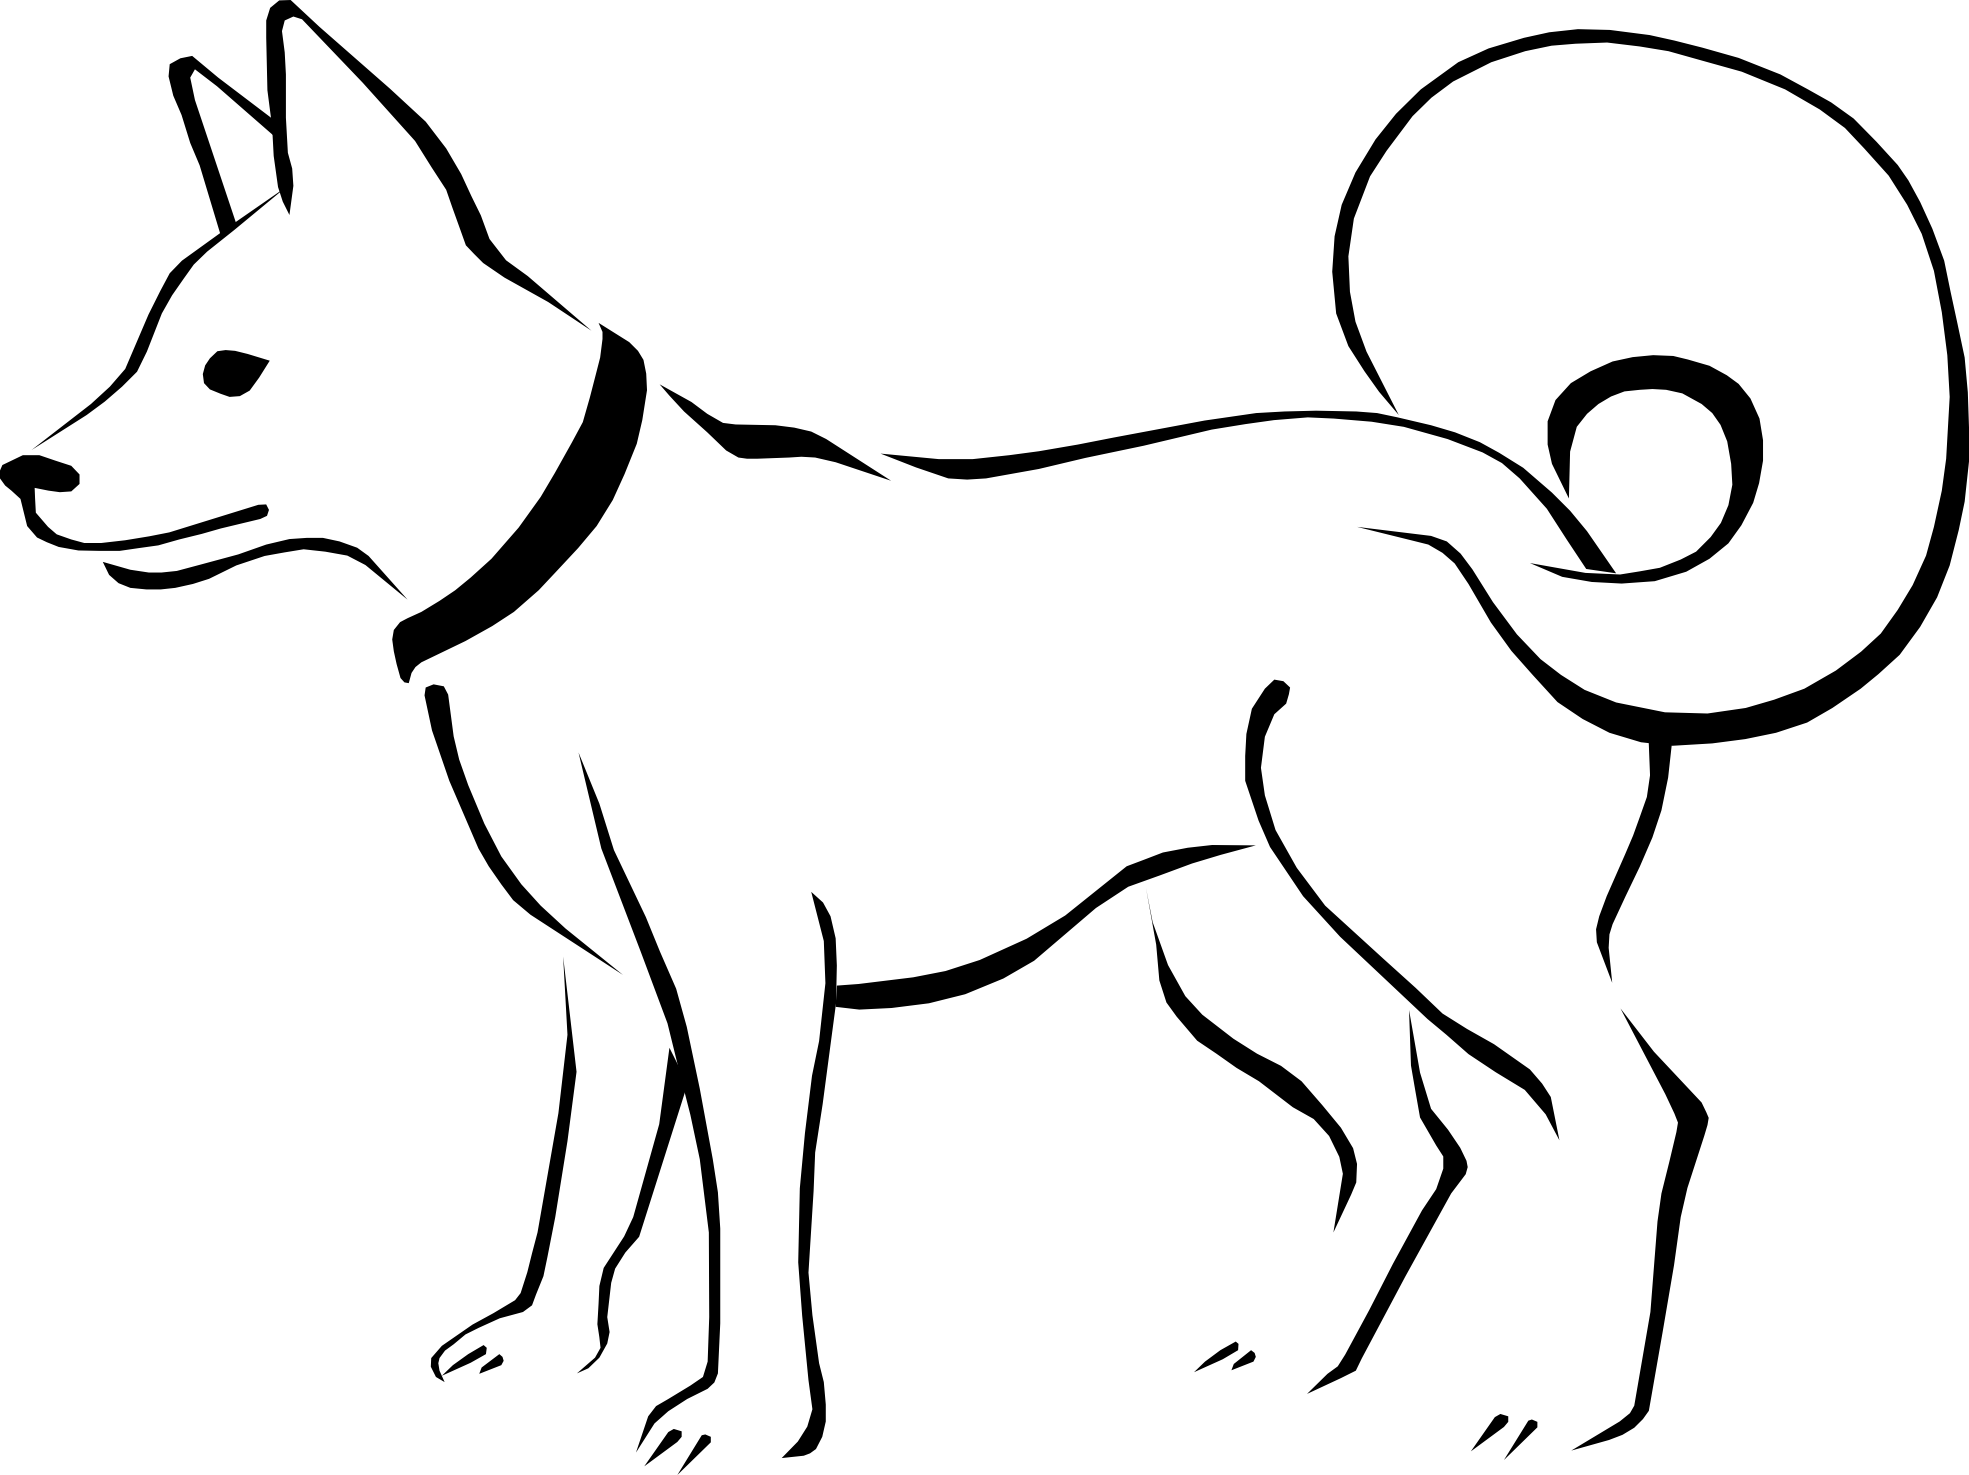 Dog clip art line drawing. Free download on clipart